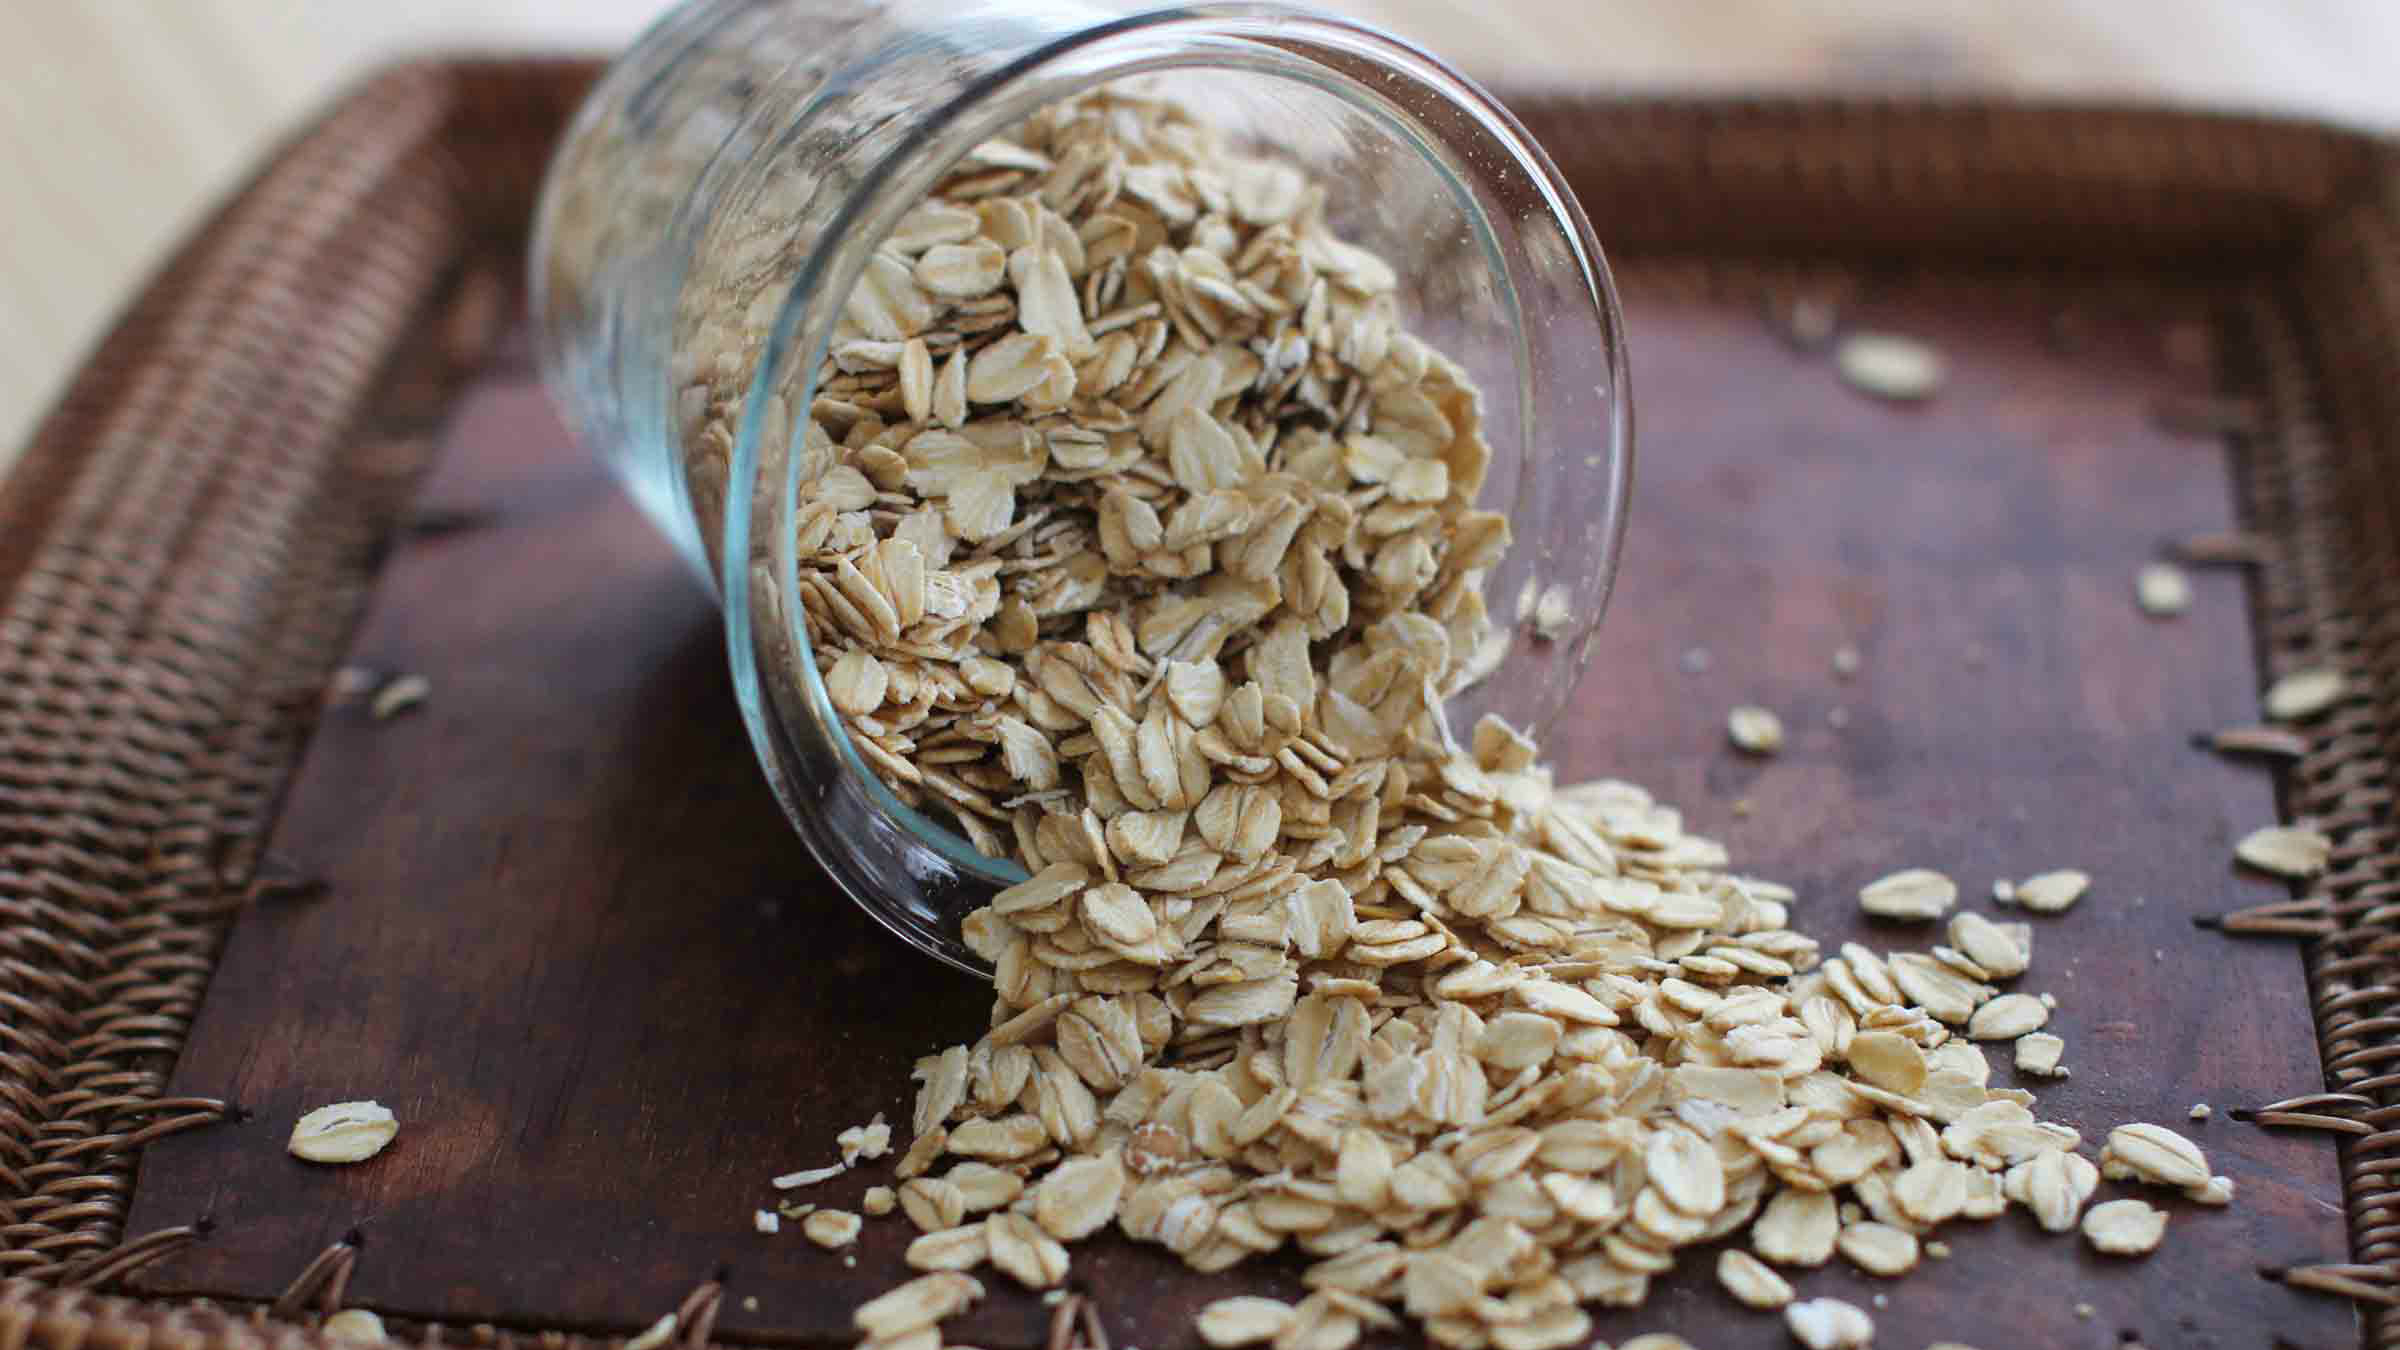 Does the presence of a little weed-killing chemical make your Quaker